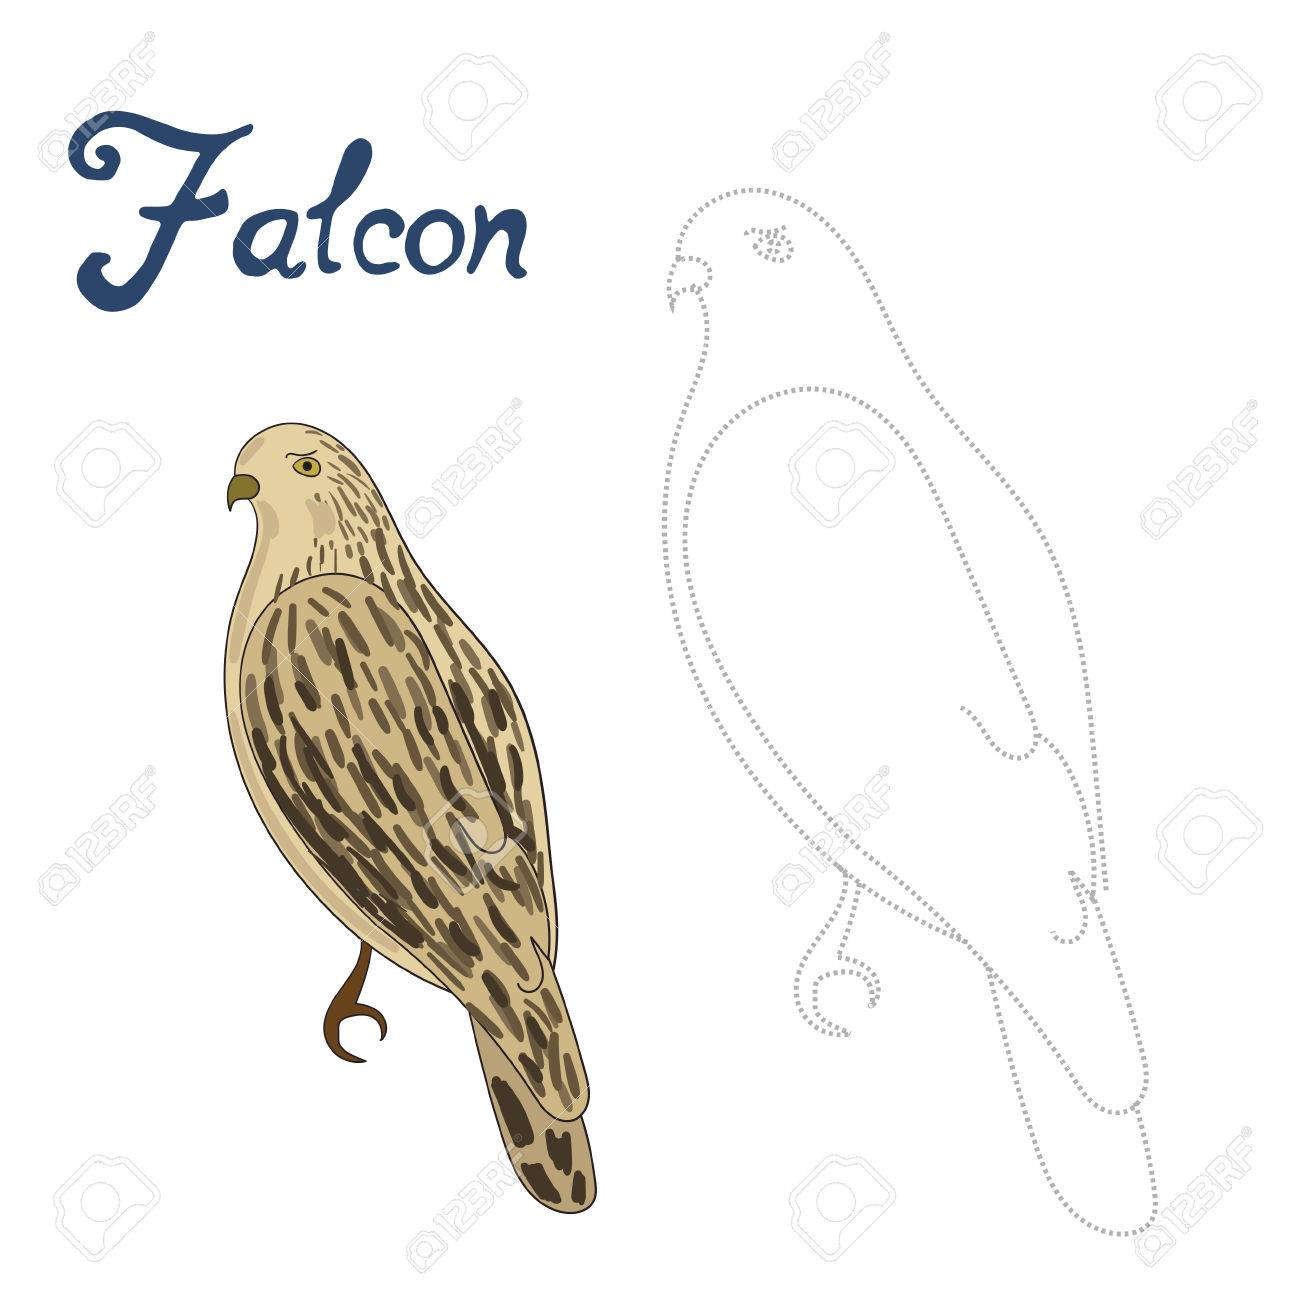 1300x1300 Educational Game Connect The Dots To Draw Falcon Bird Cartoon